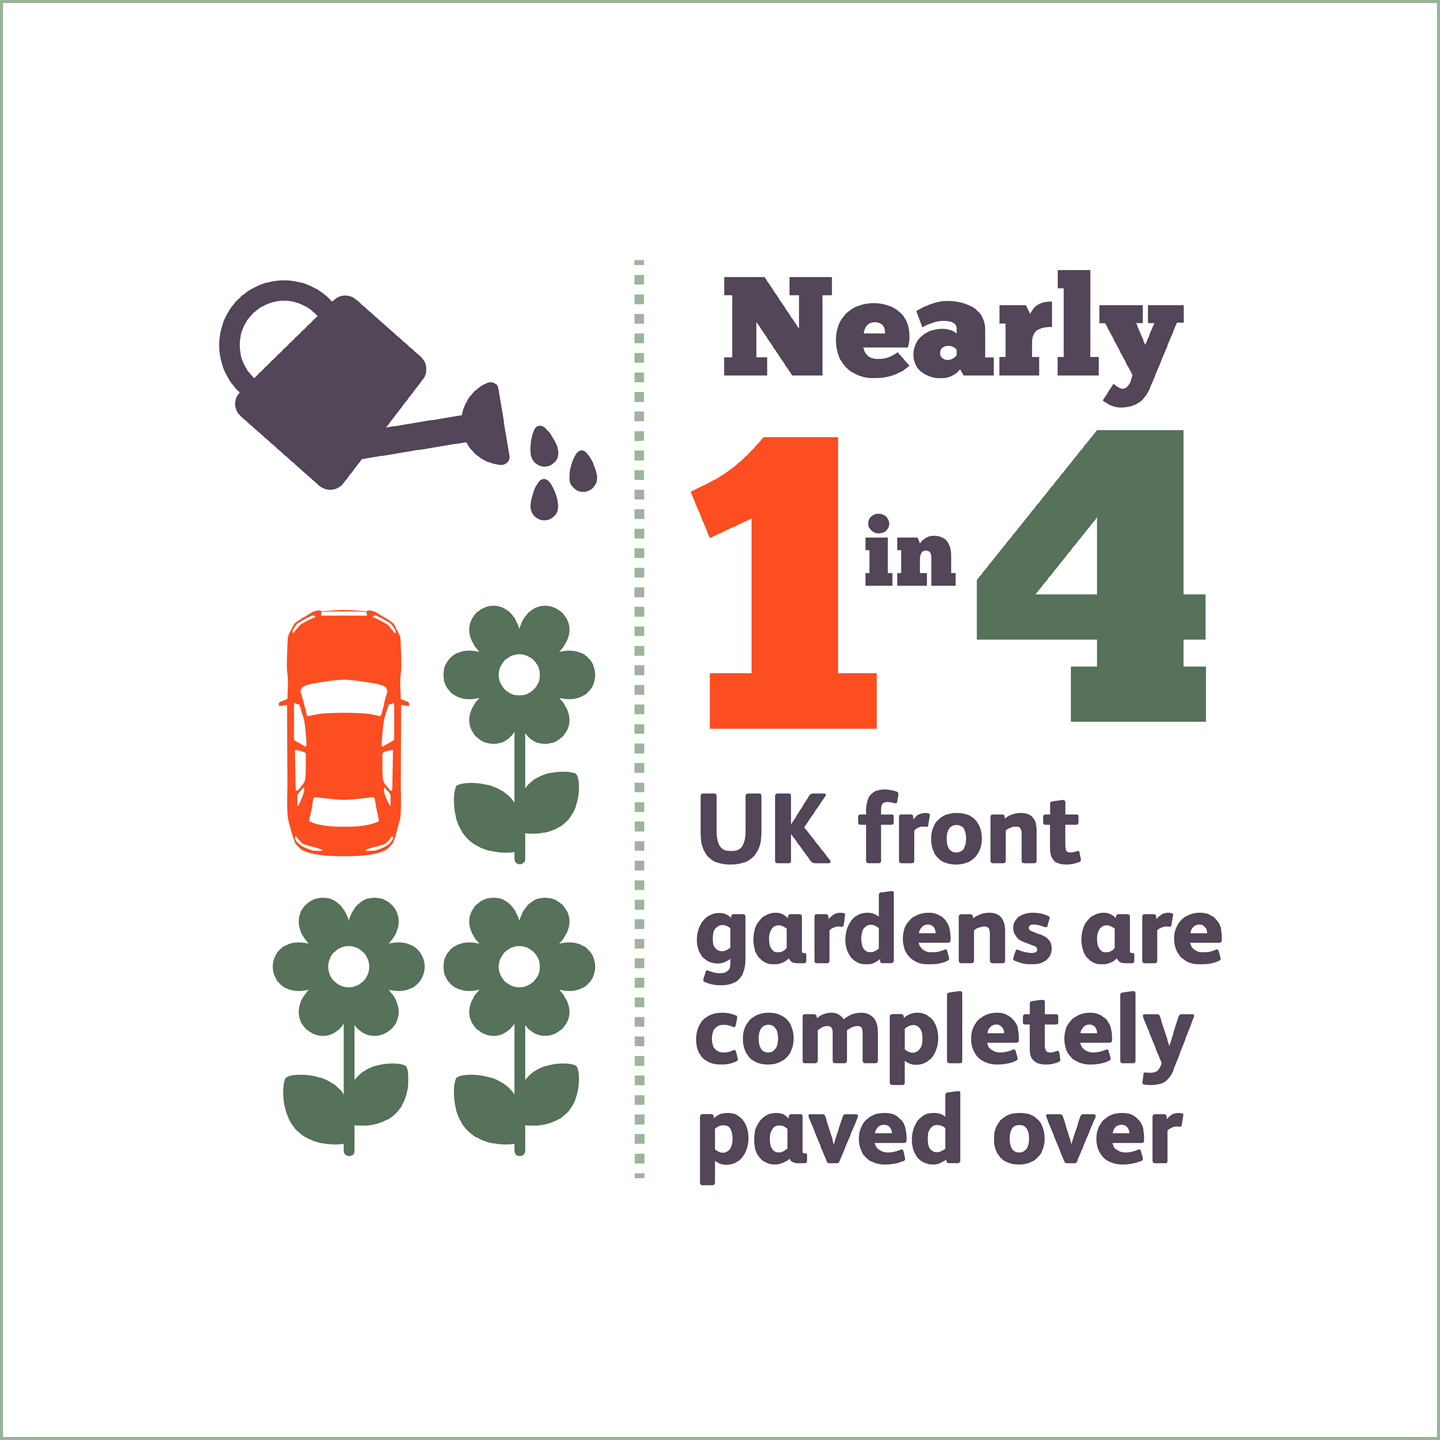 Nearly 1 in 4 UK front gardens are completely paved over